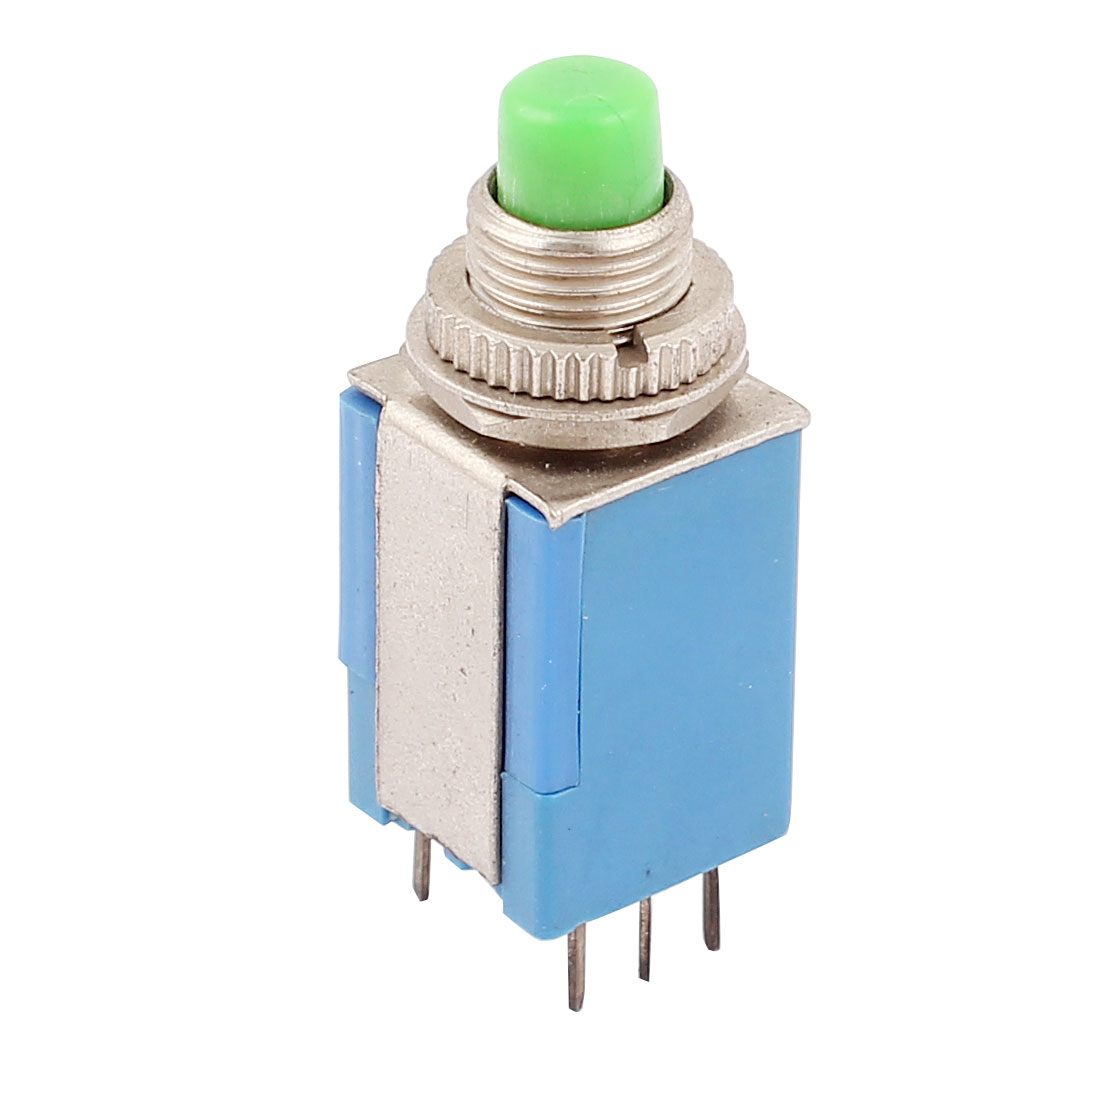 AC 250V/1A 125V/3A 6 Pin DPDT Flat Head Momentary Push Button Pushbutton Switch